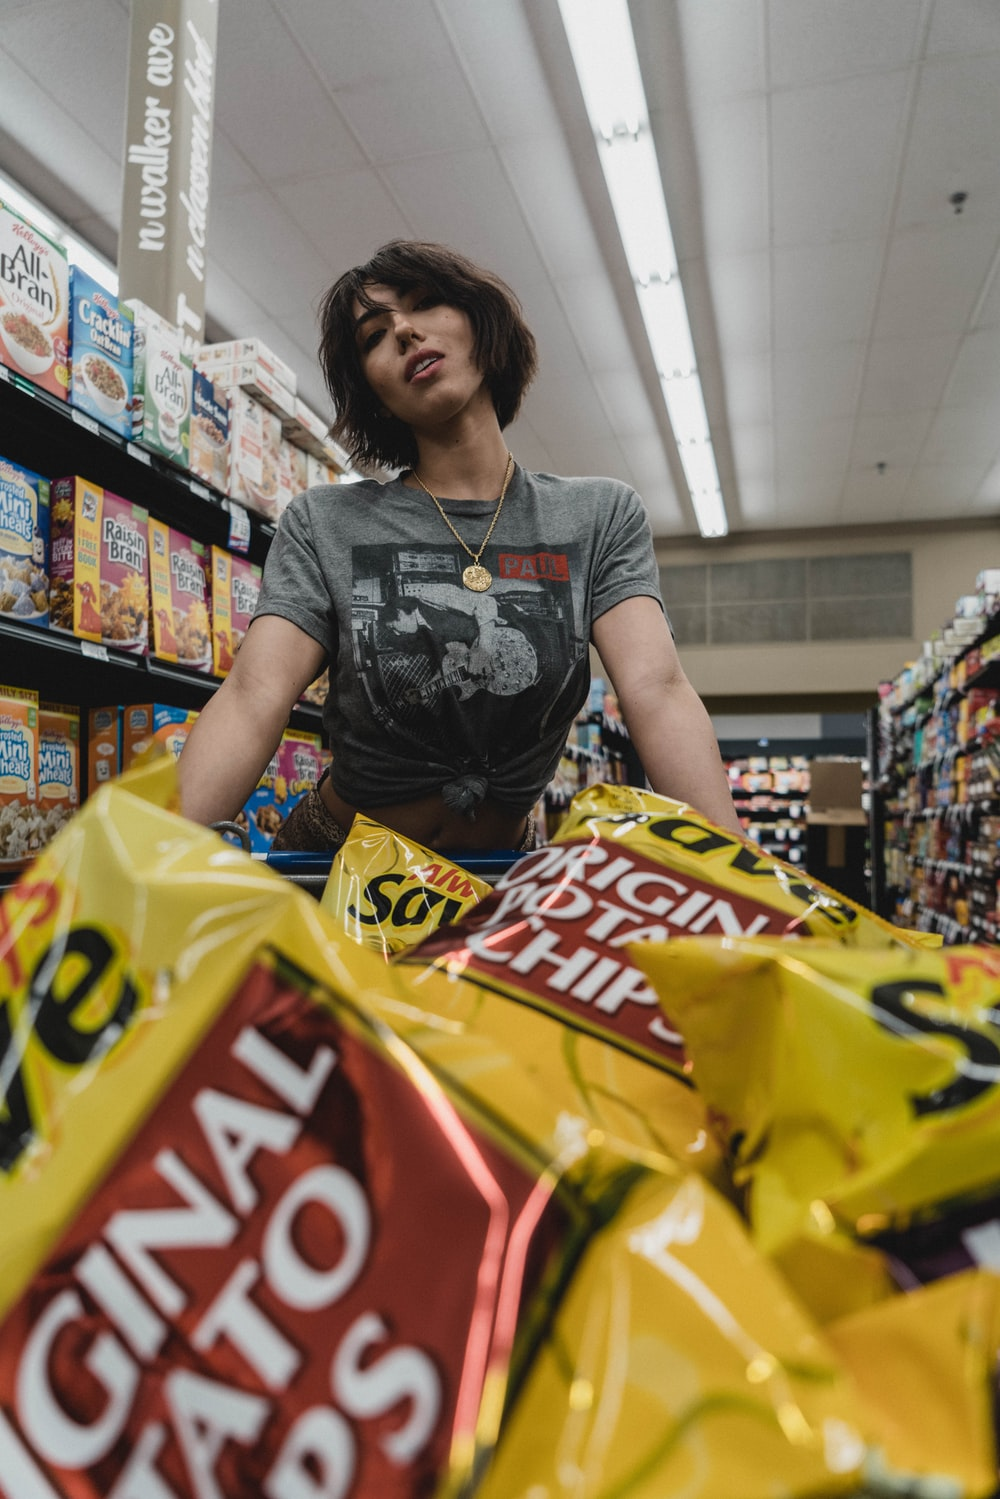 woman standing in front of chip bags inside store